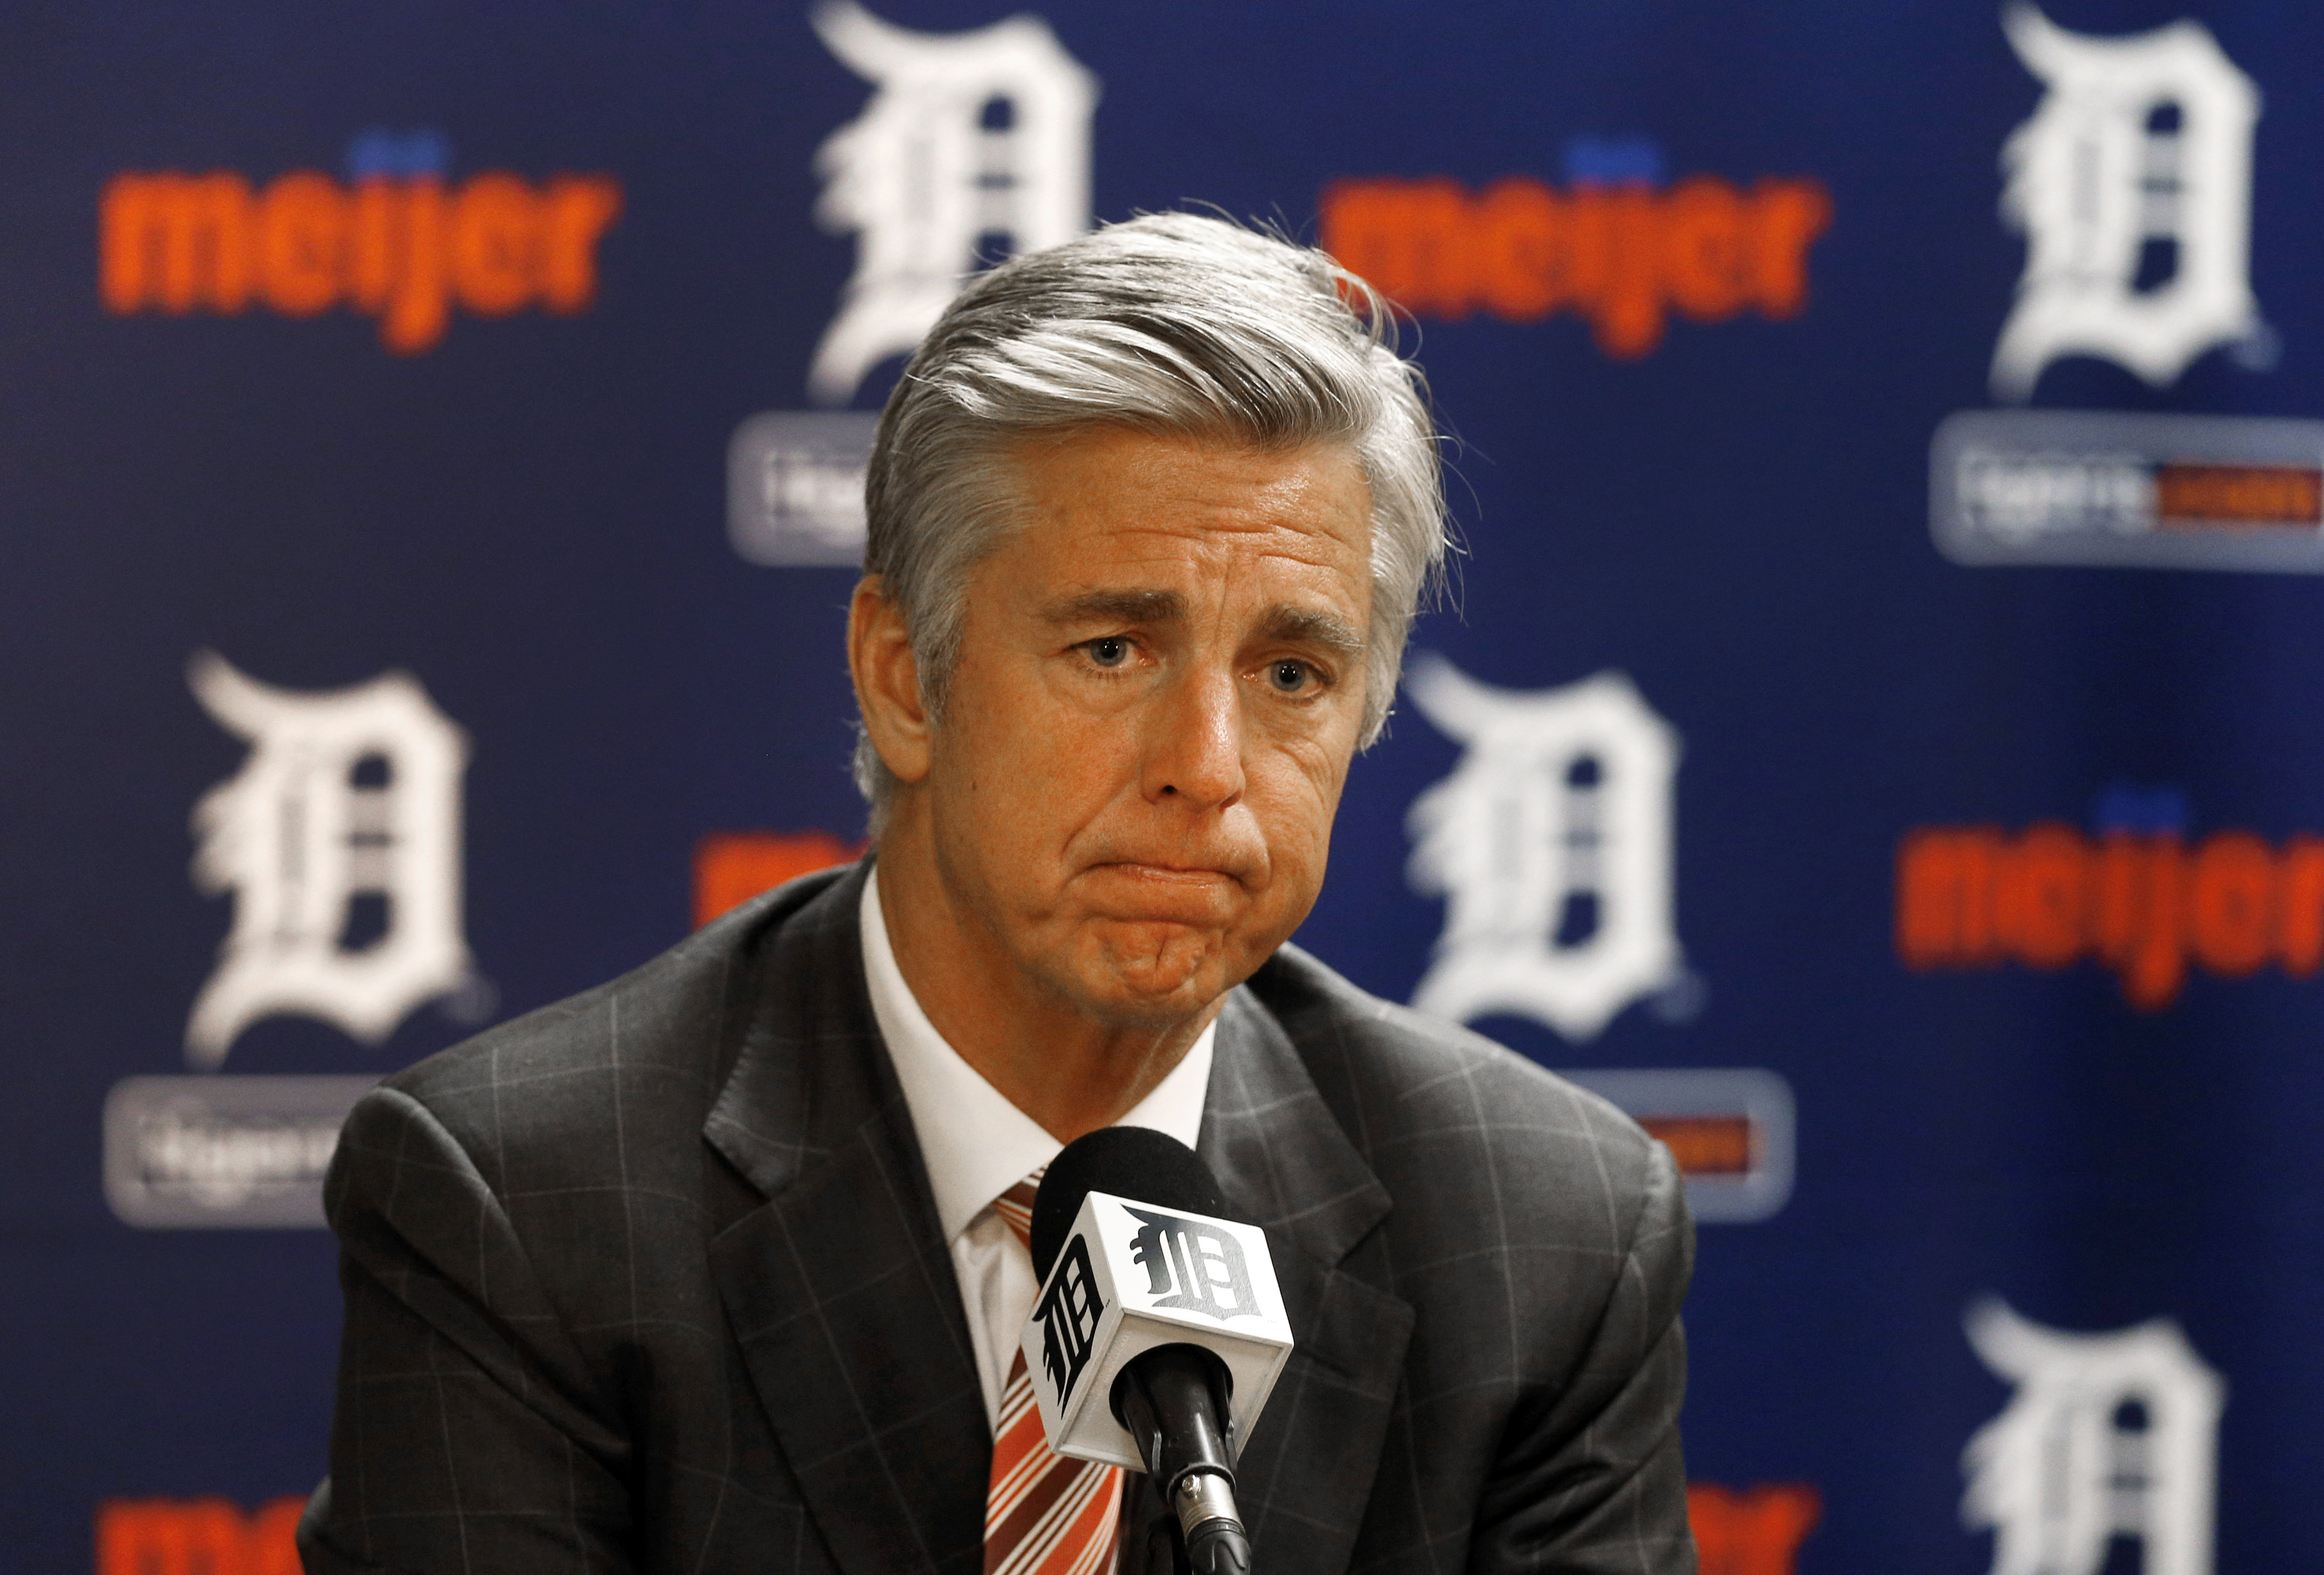 FILE - In this Oct. 14, 2014, file photo, Detroit Tigers general manager Dave Dombrowski speaks to the media during a baseball news conference in Detroit. The Tigers announced, Tuesday, Aug. 4, 2015, that assistant general manager Al Avila has been promot